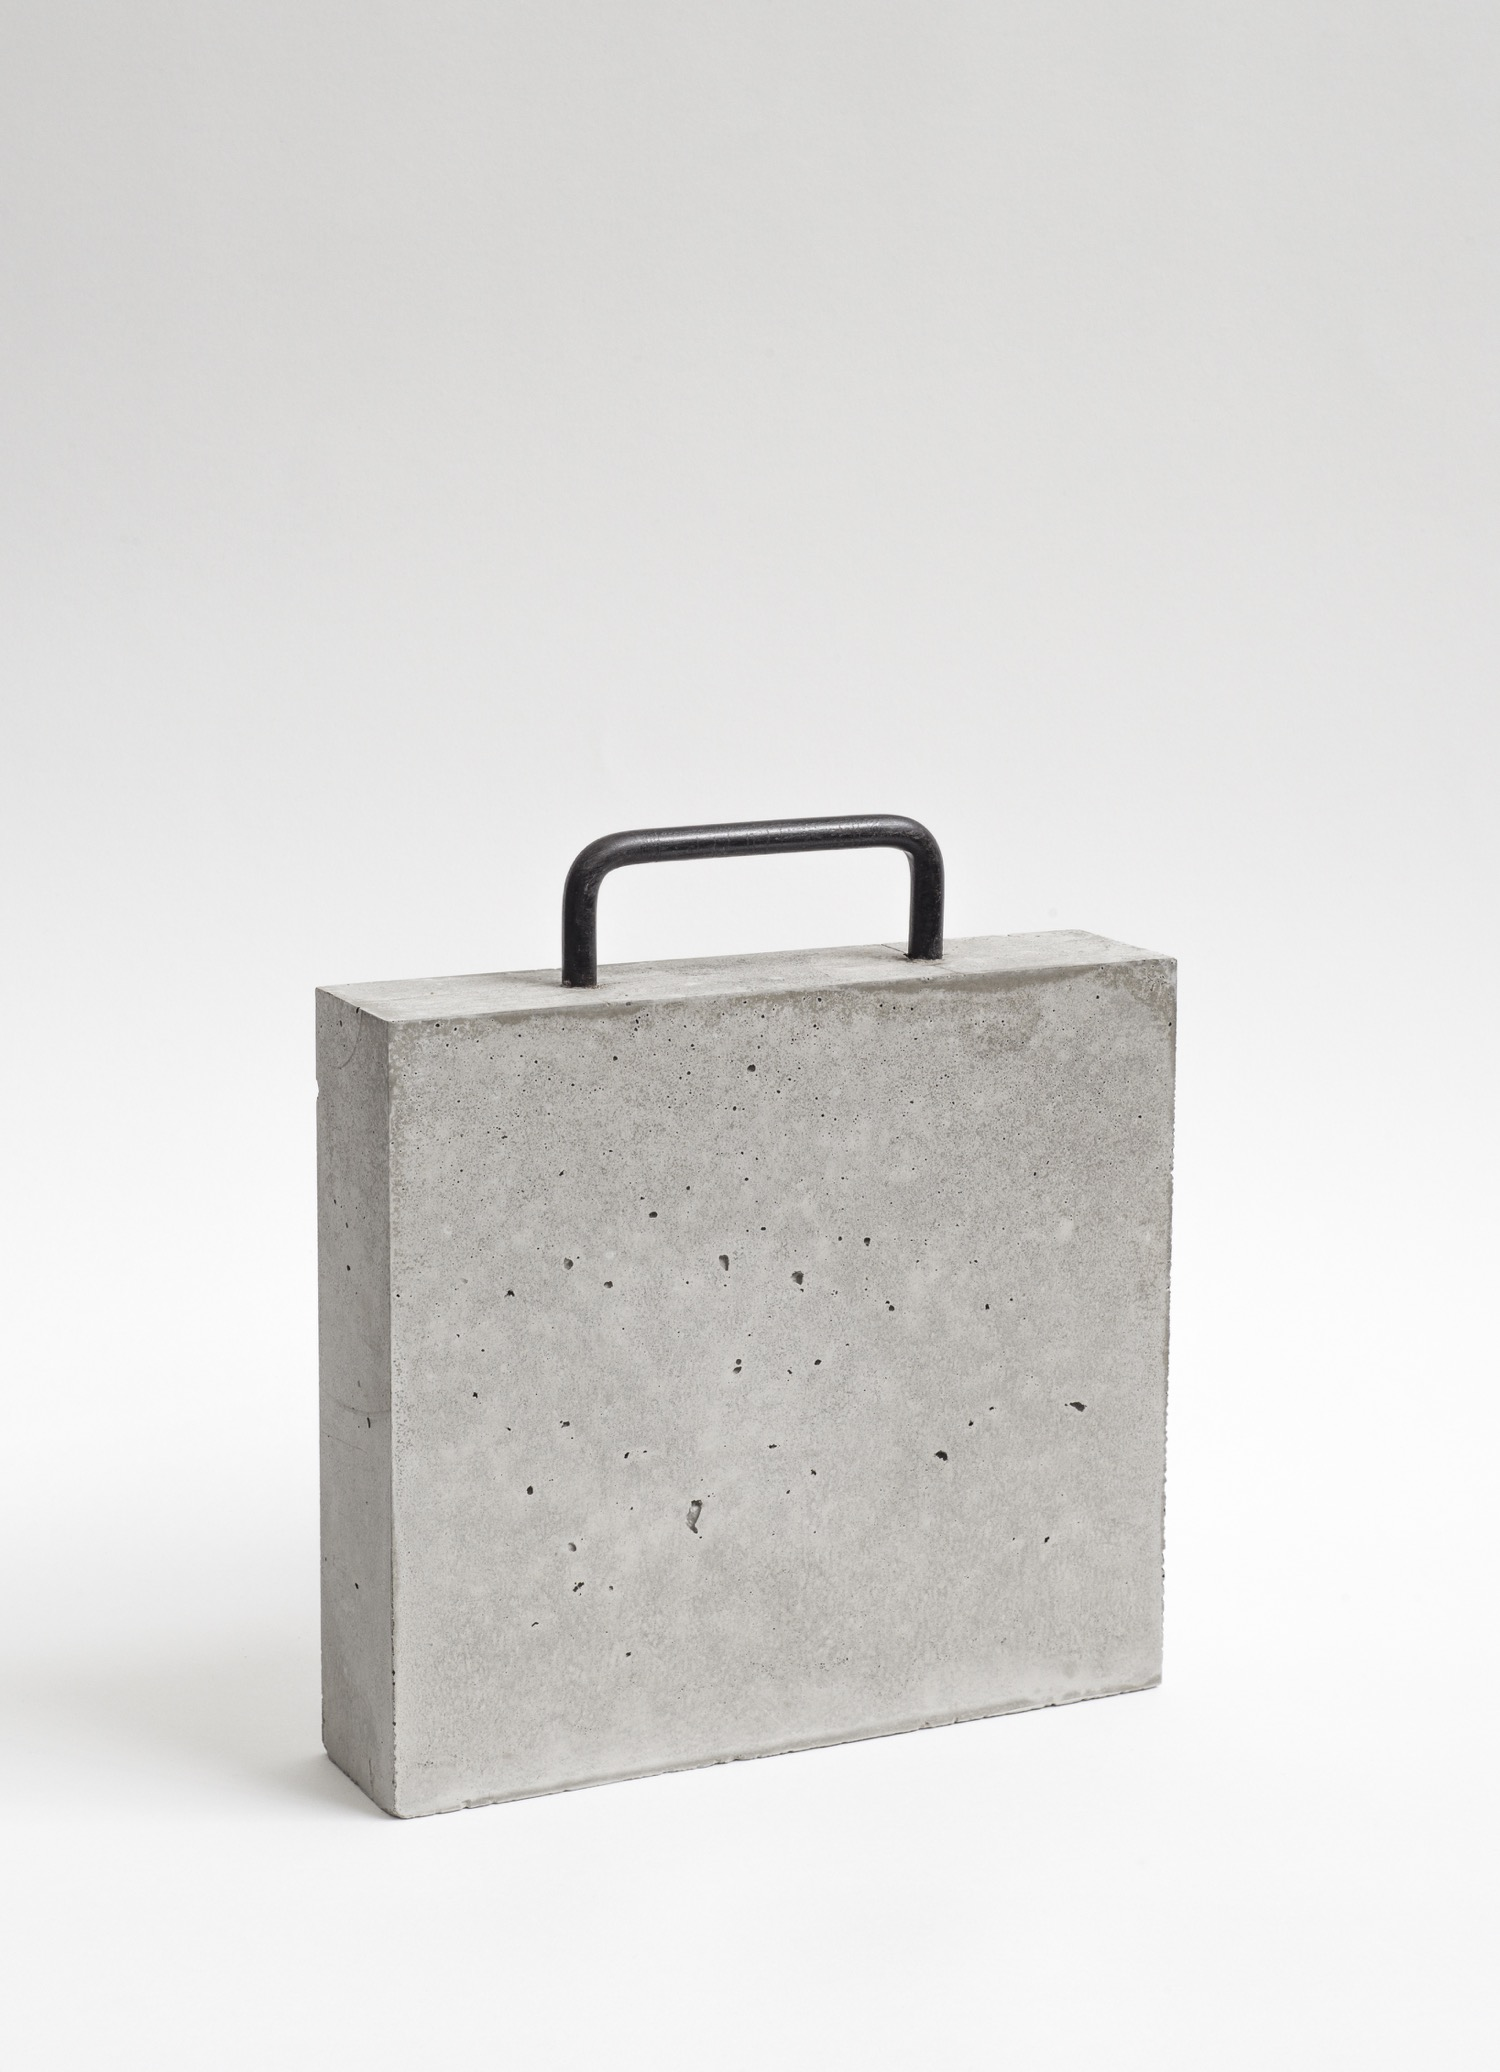 1 Case bag.Beton.Stahl.32,5x30x7.2018